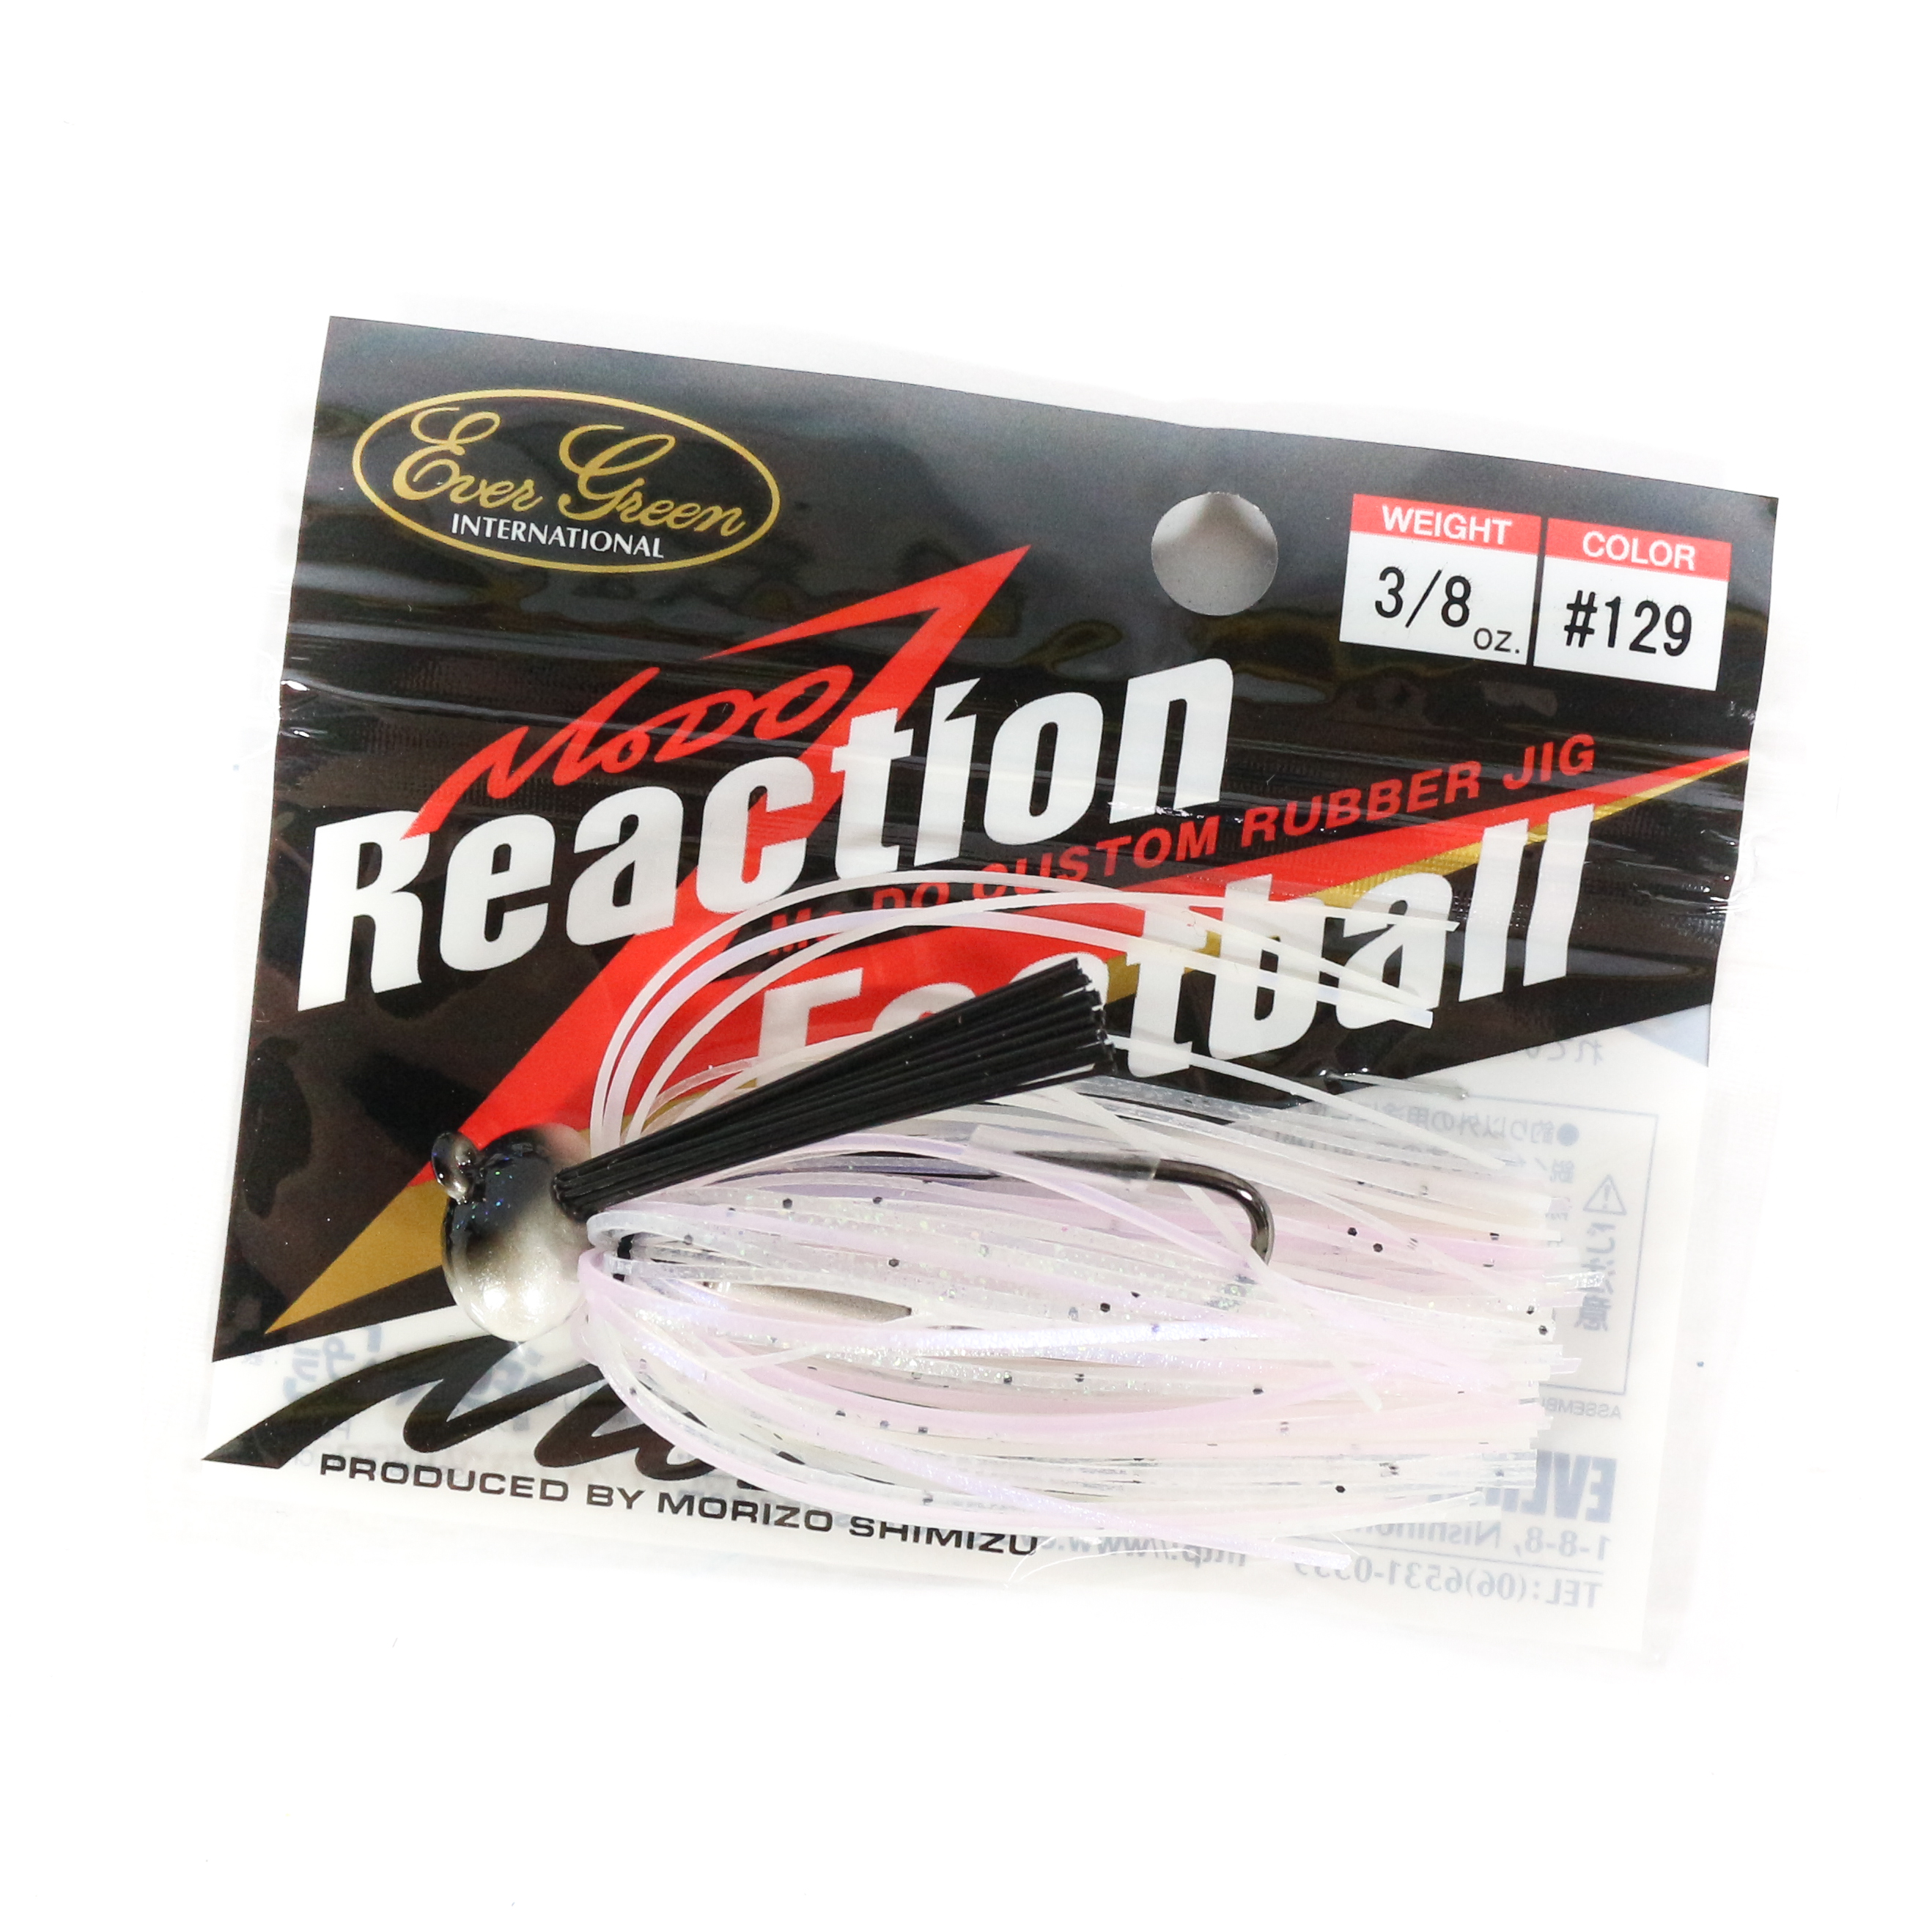 Evergreen Reaction Football Casting Jig 3/8 oz 129 (2309)